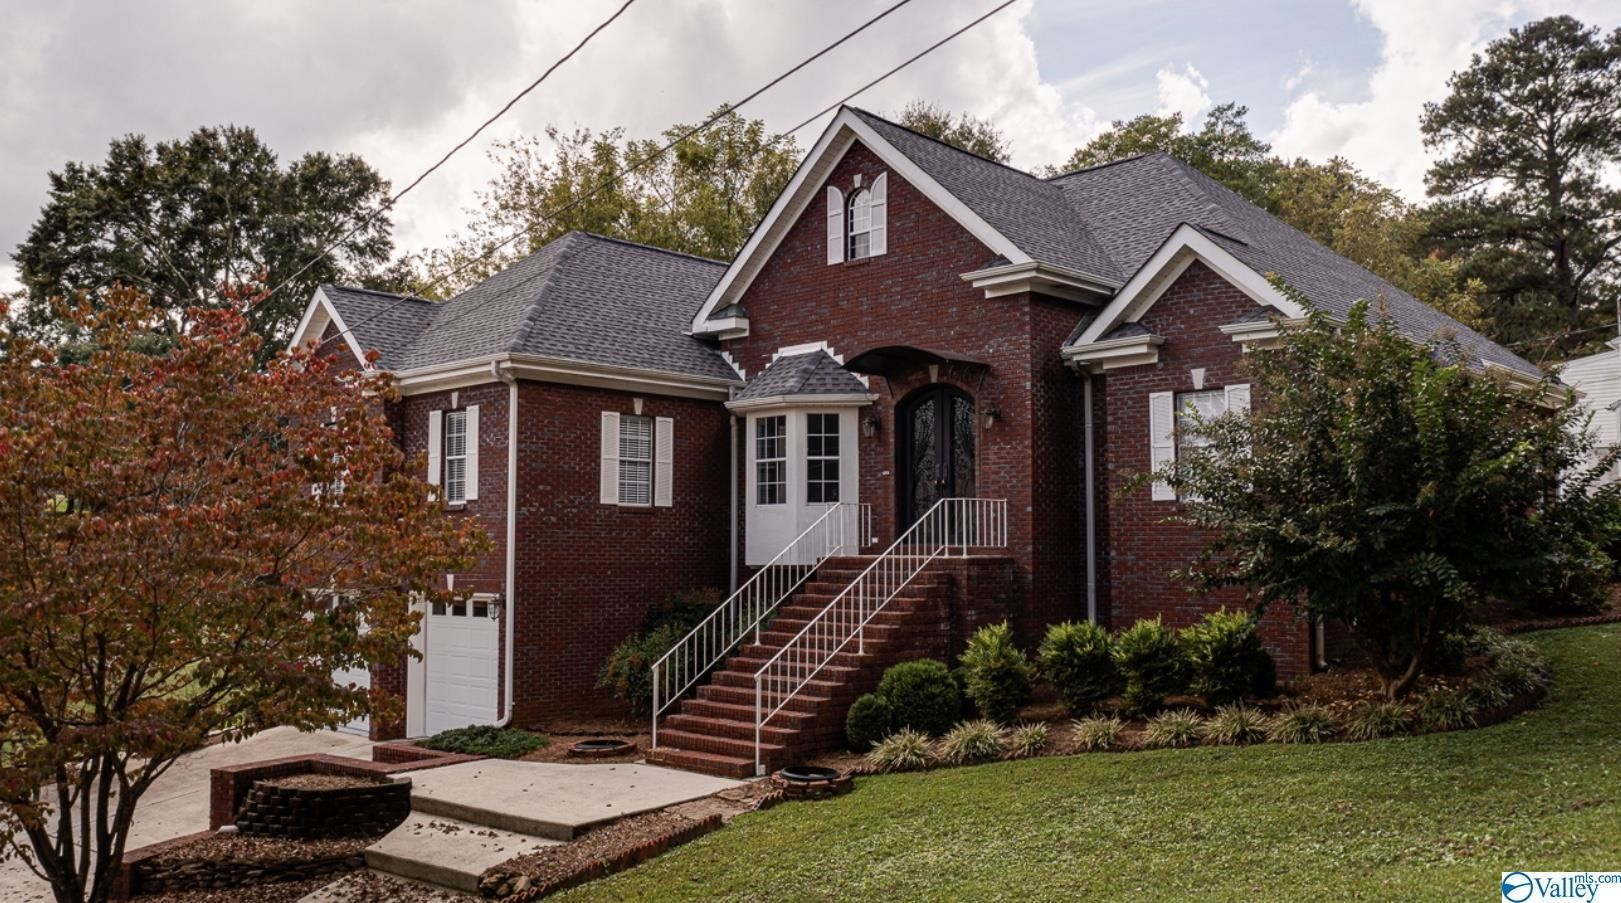 6-Bedroom House In Cullman